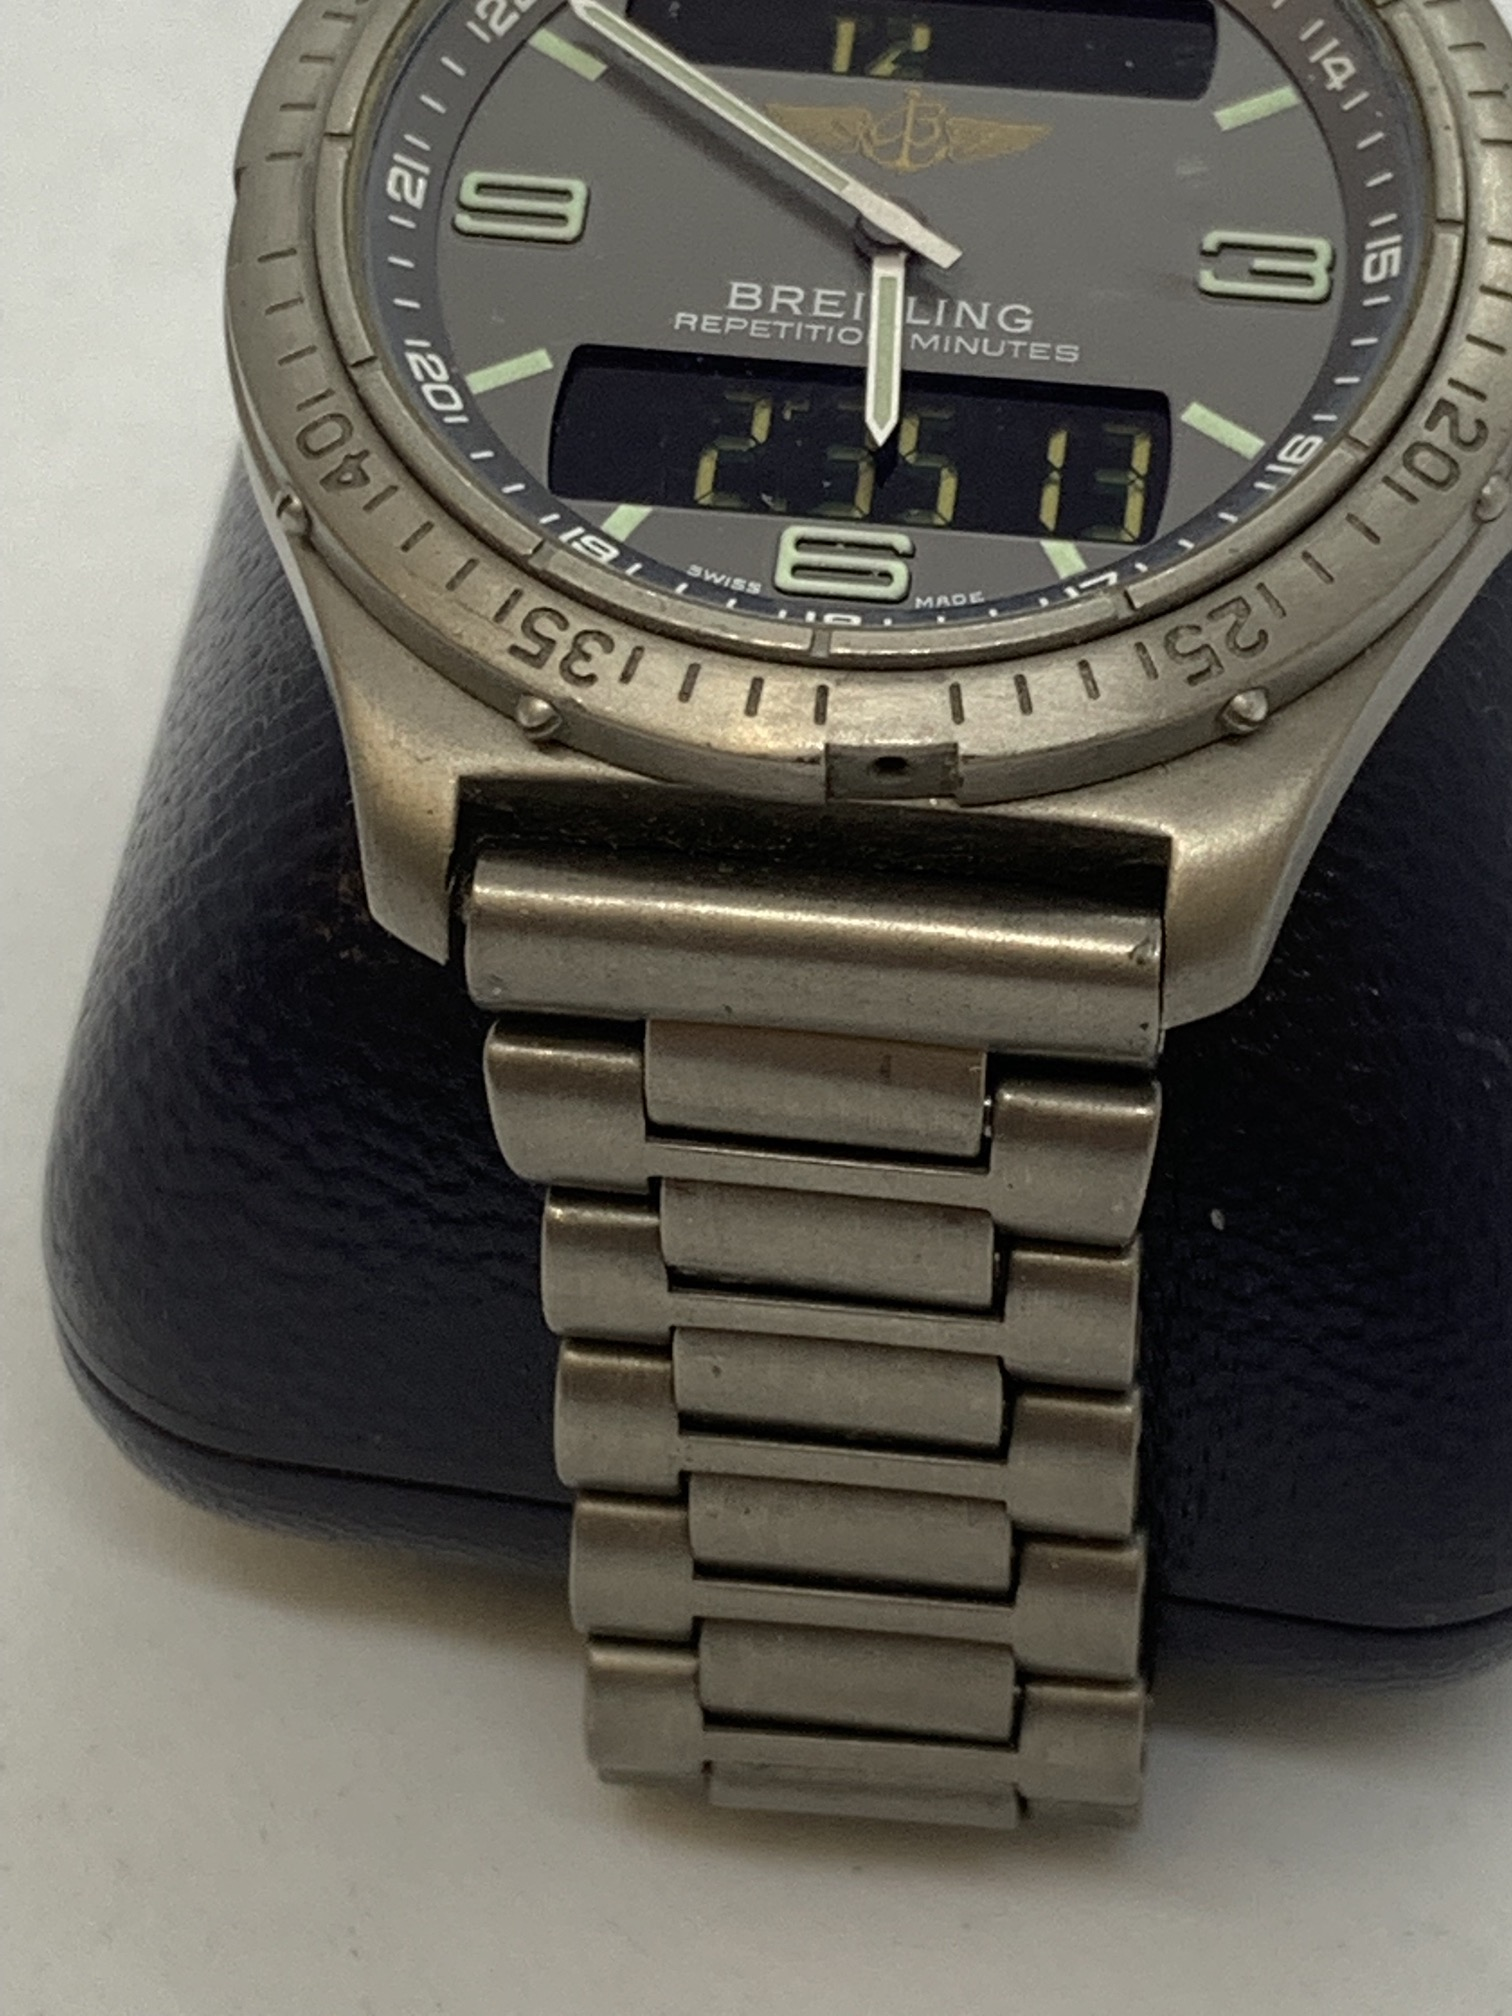 BREITLING TITANIUM WATCH A/F - Image 4 of 15